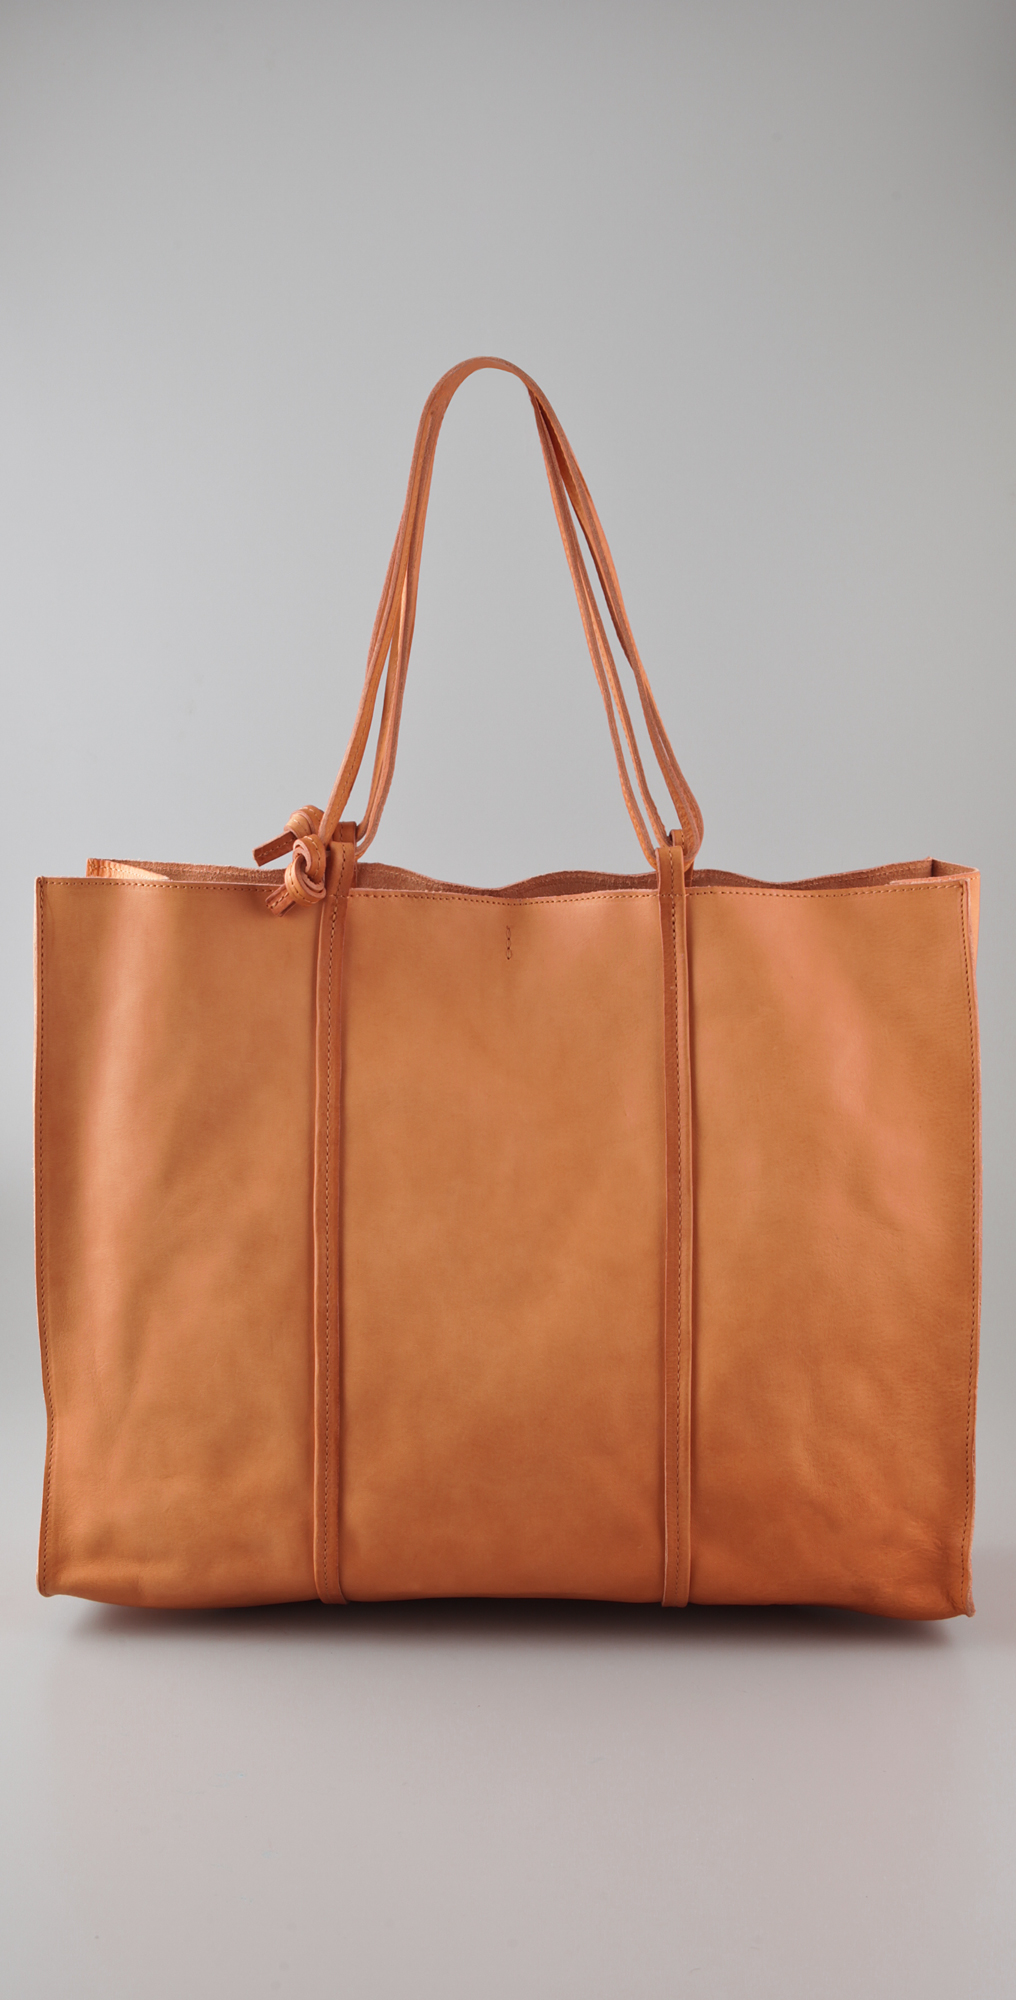 Maison Margiela Leather Tote Bag   SHOPBOP b25c743983